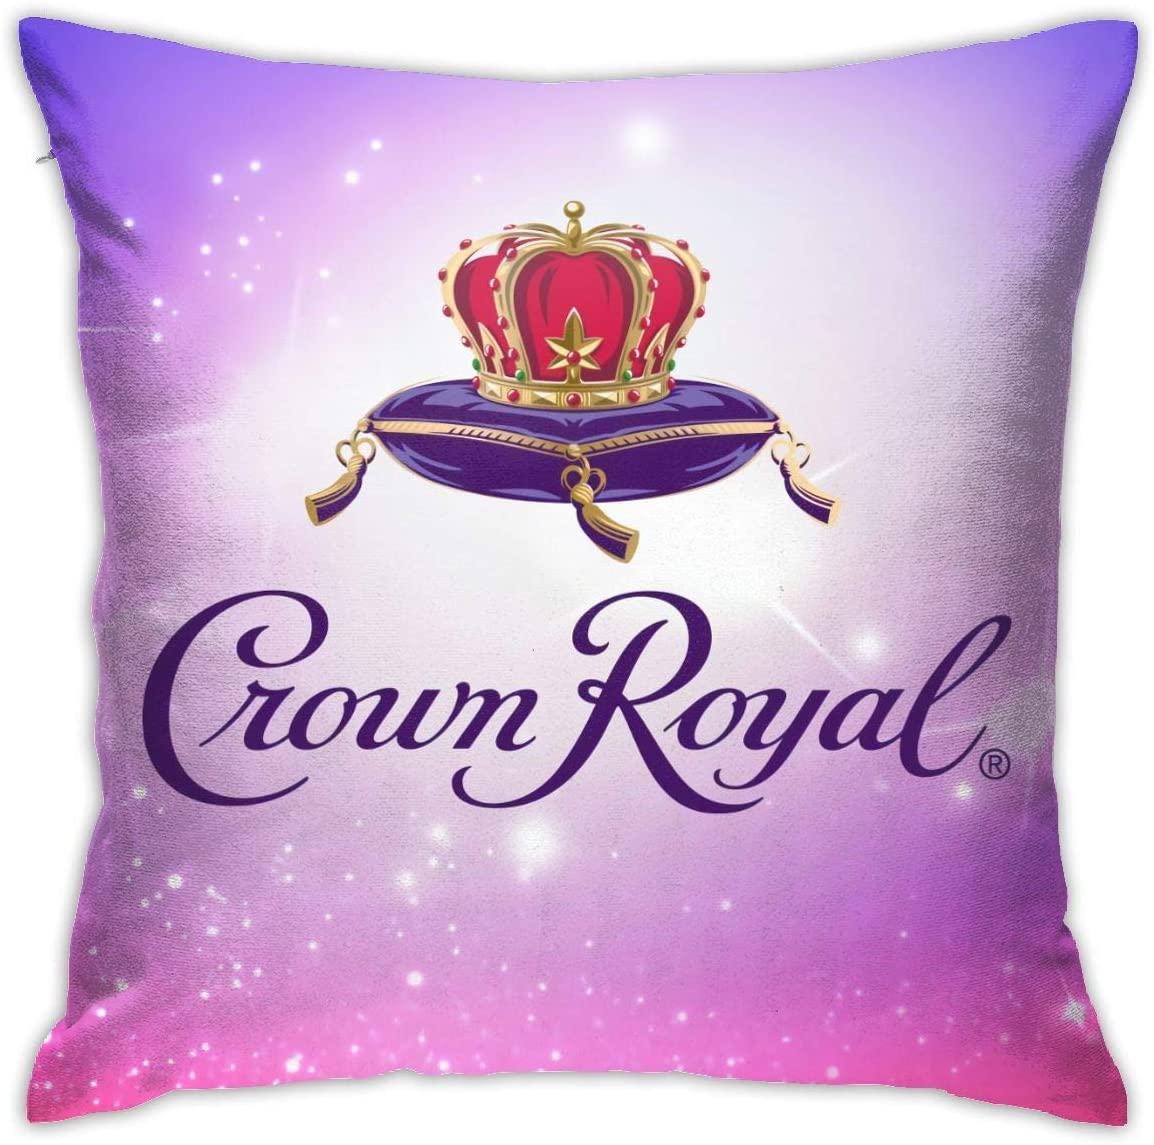 Aebipo Crown Royal Pillow Cover Cotton Polyester Cushion Cover 18